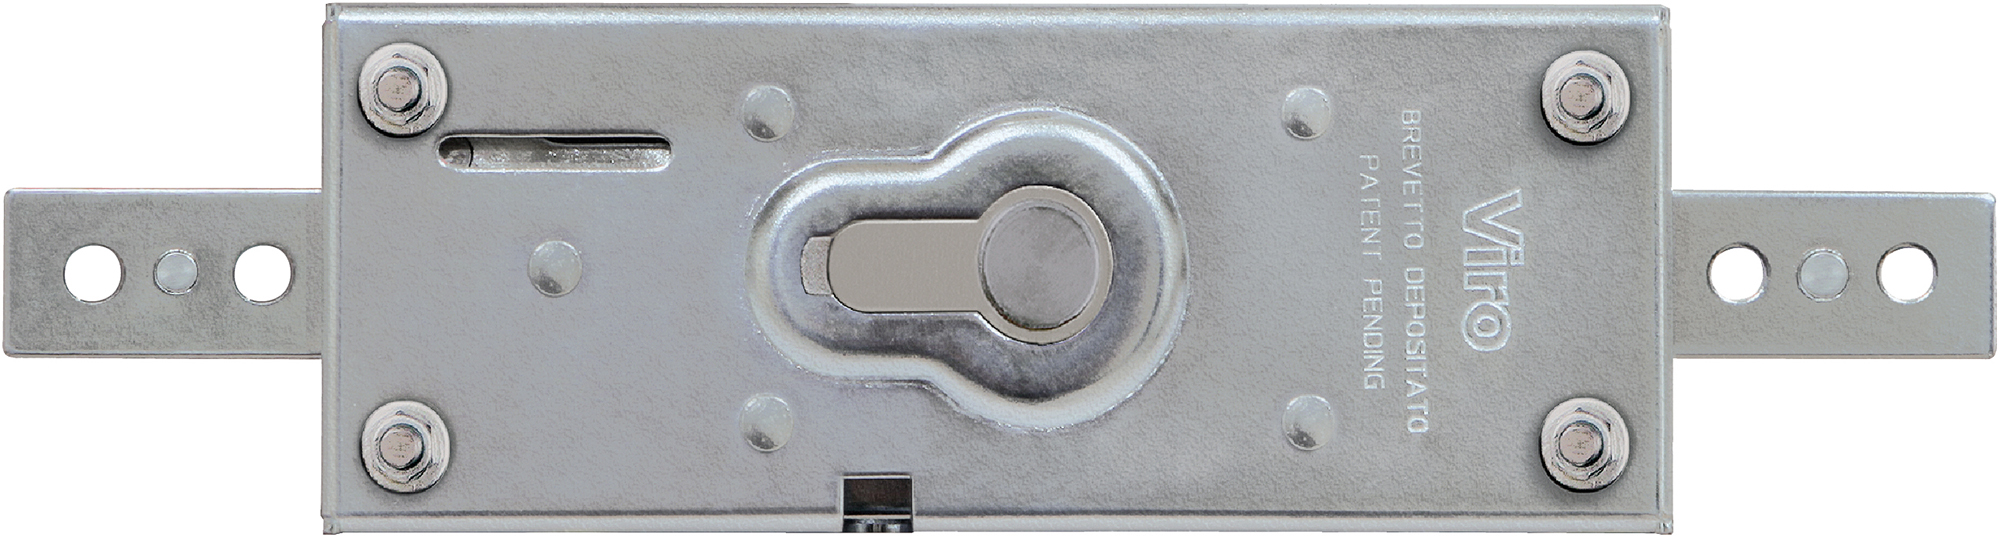 UNIVERSAL INTERNAL SHUTTER SECURITY LOCK WITH 70MM PADLOCK